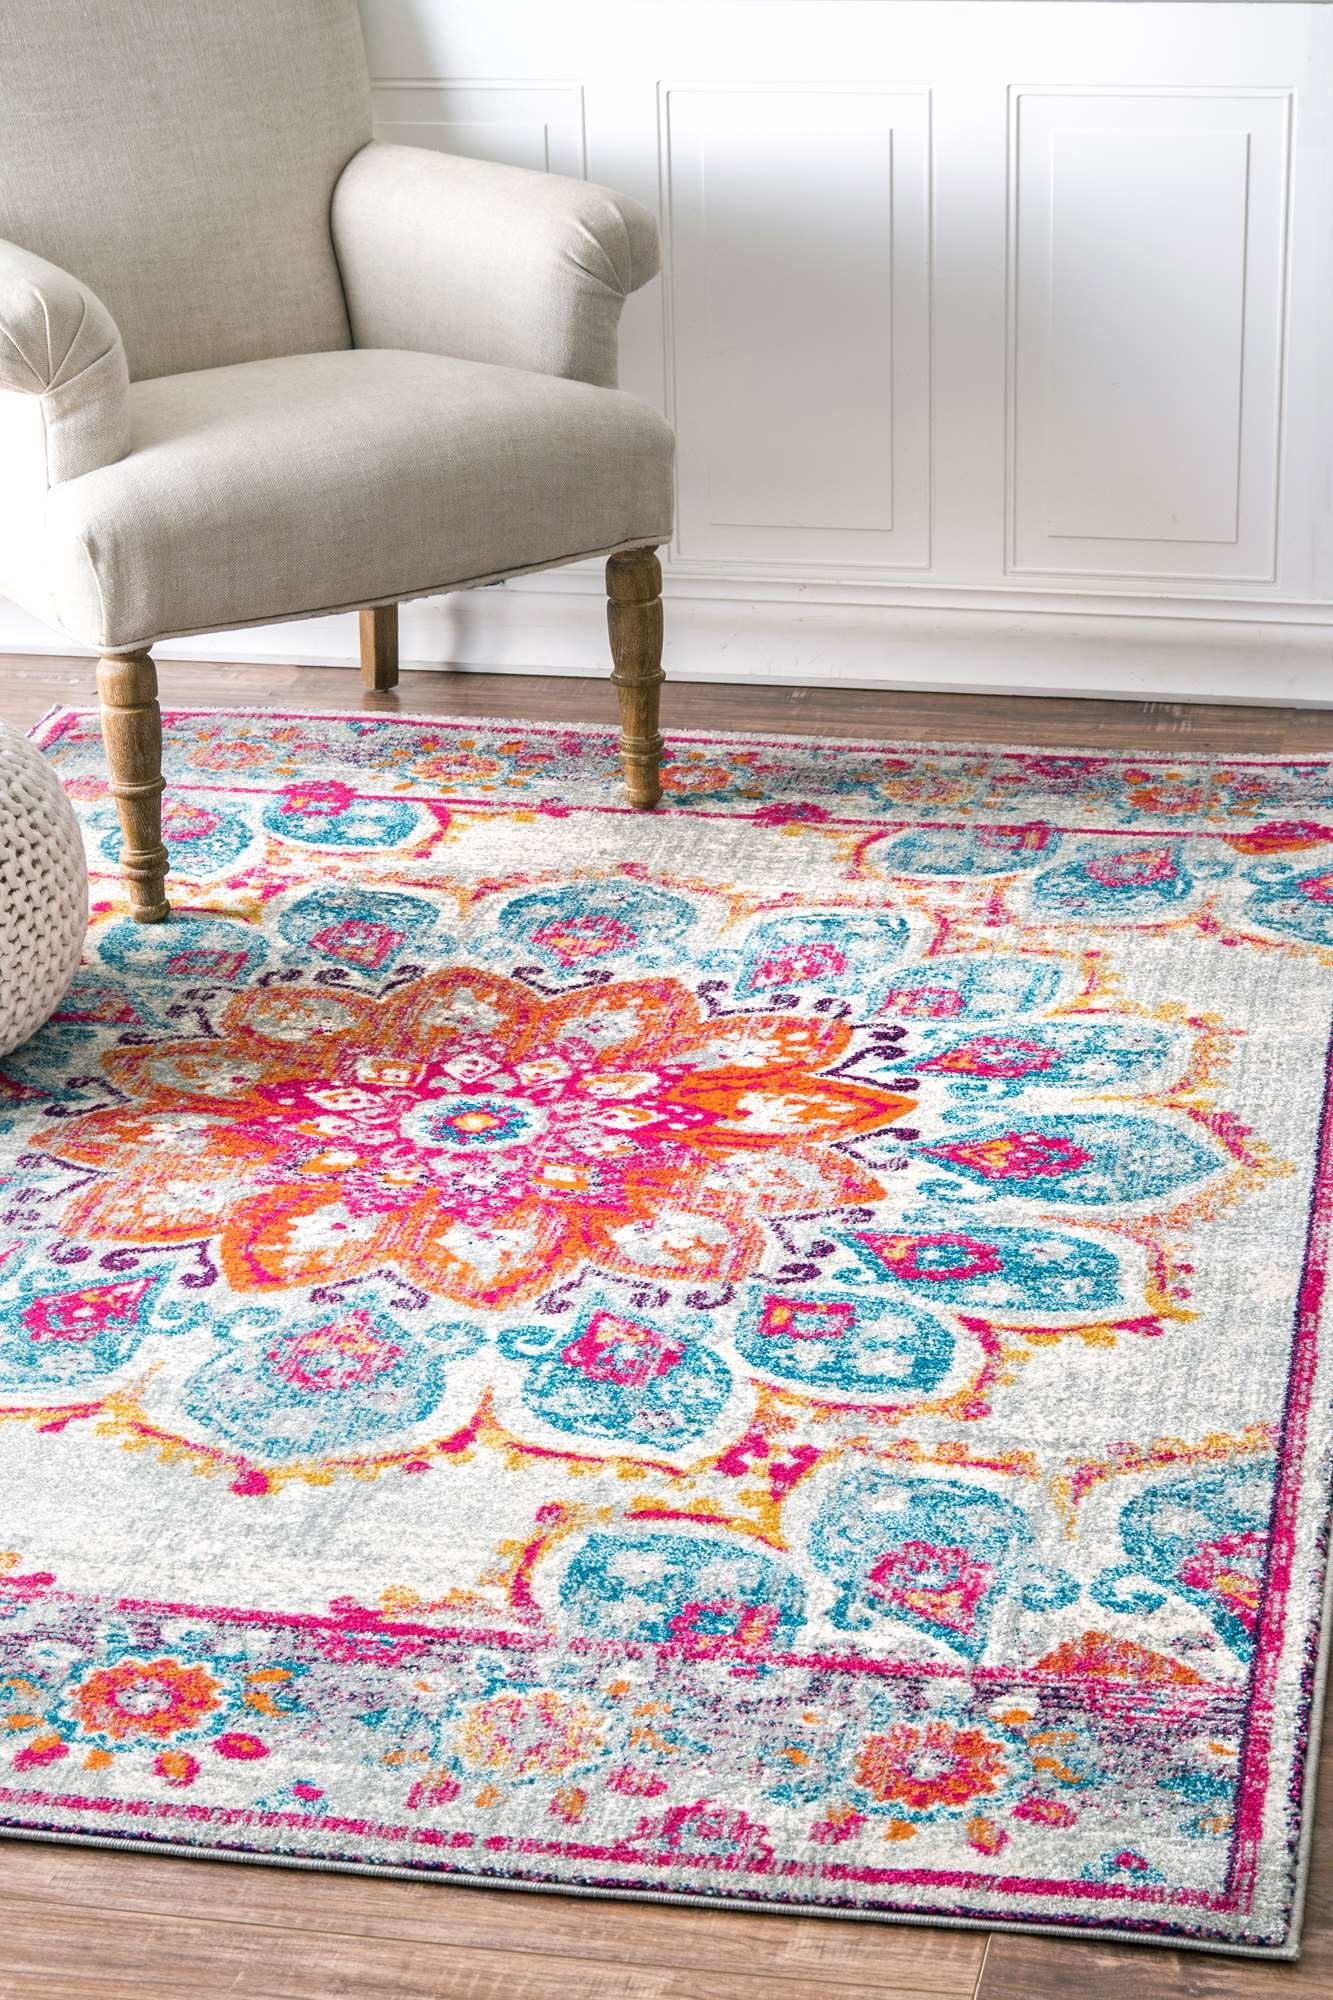 Wellston Power Loom Polypropylene Indoor Orange Pink Purple Cerulean Blue Gray Mustard Yellow Off White Area Rug Turquoise Rug Floral Area Rugs Area Rugs